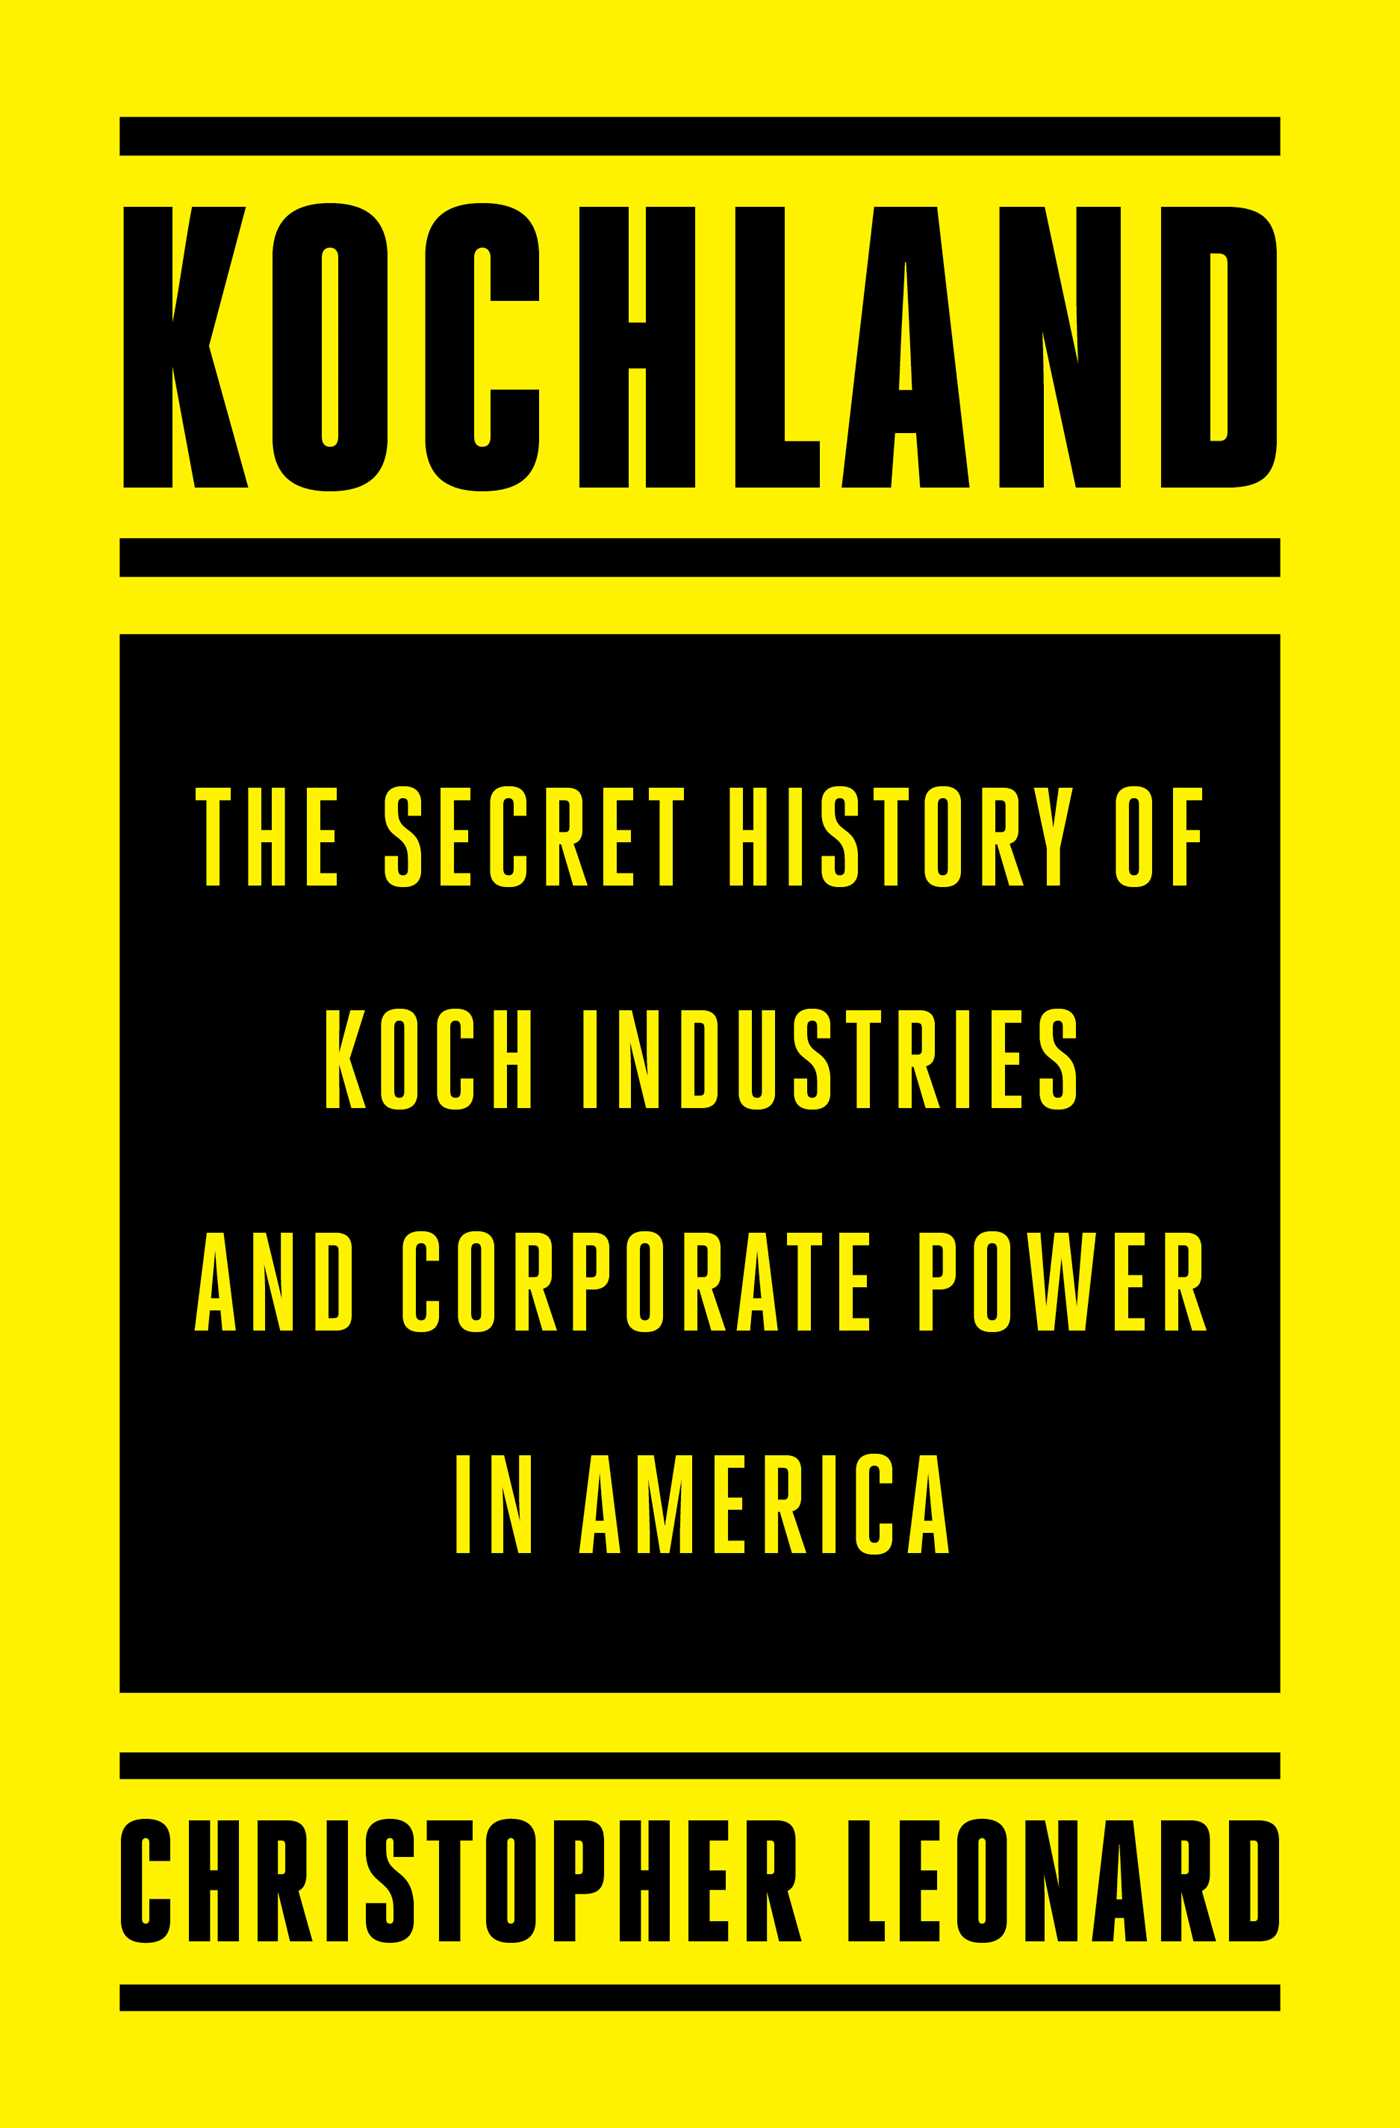 [PDF] [EPUB] Kochland: The Secret History of Koch Industries and Corporate Power in America Download by Christopher Leonard